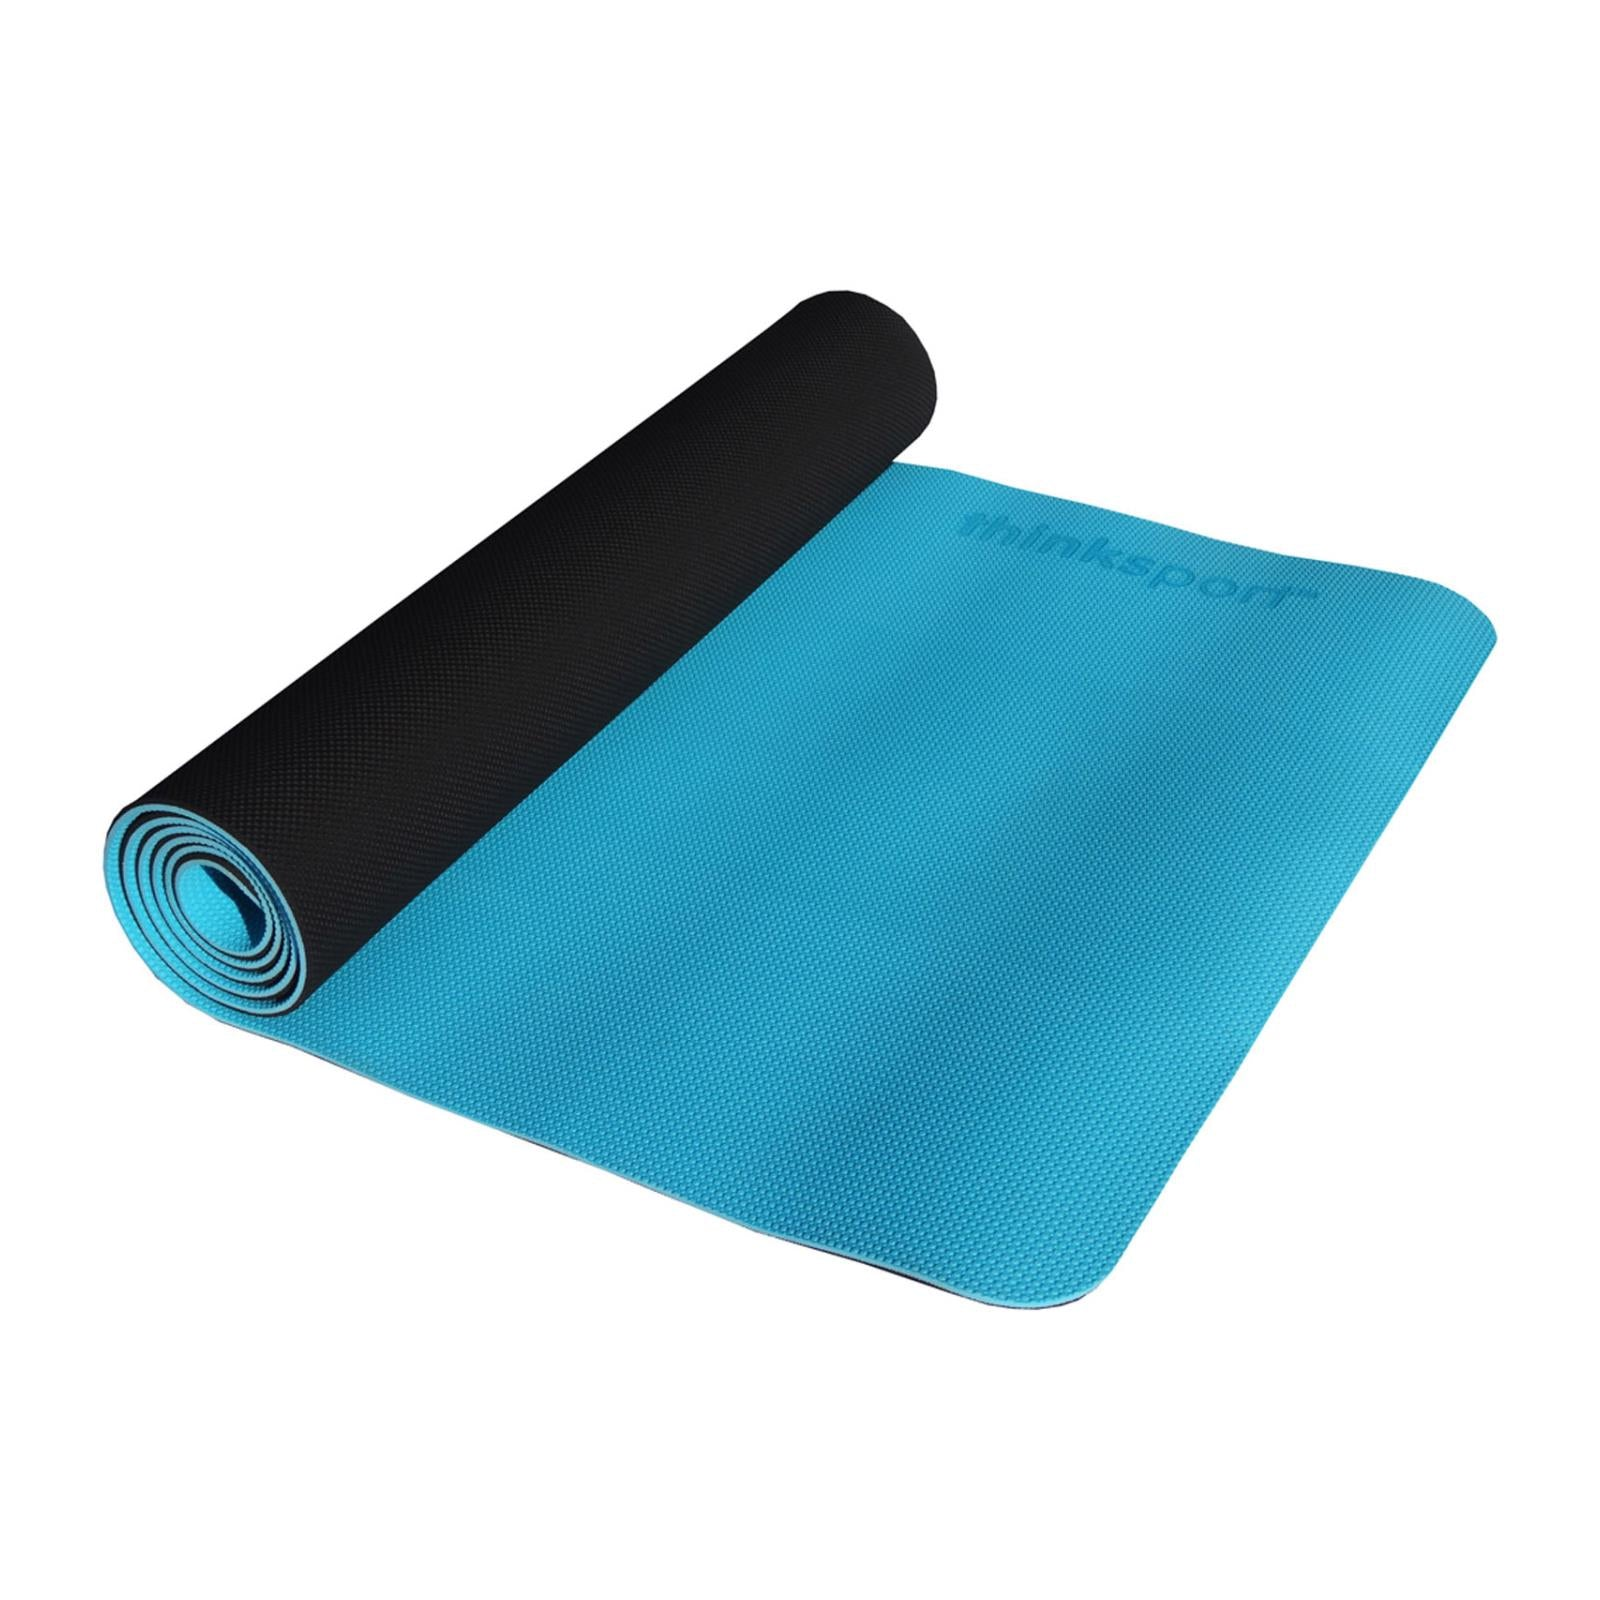 Buy Thinksport Yoga Mat - Black/Bright Blue - Yoga from Veroeco.com